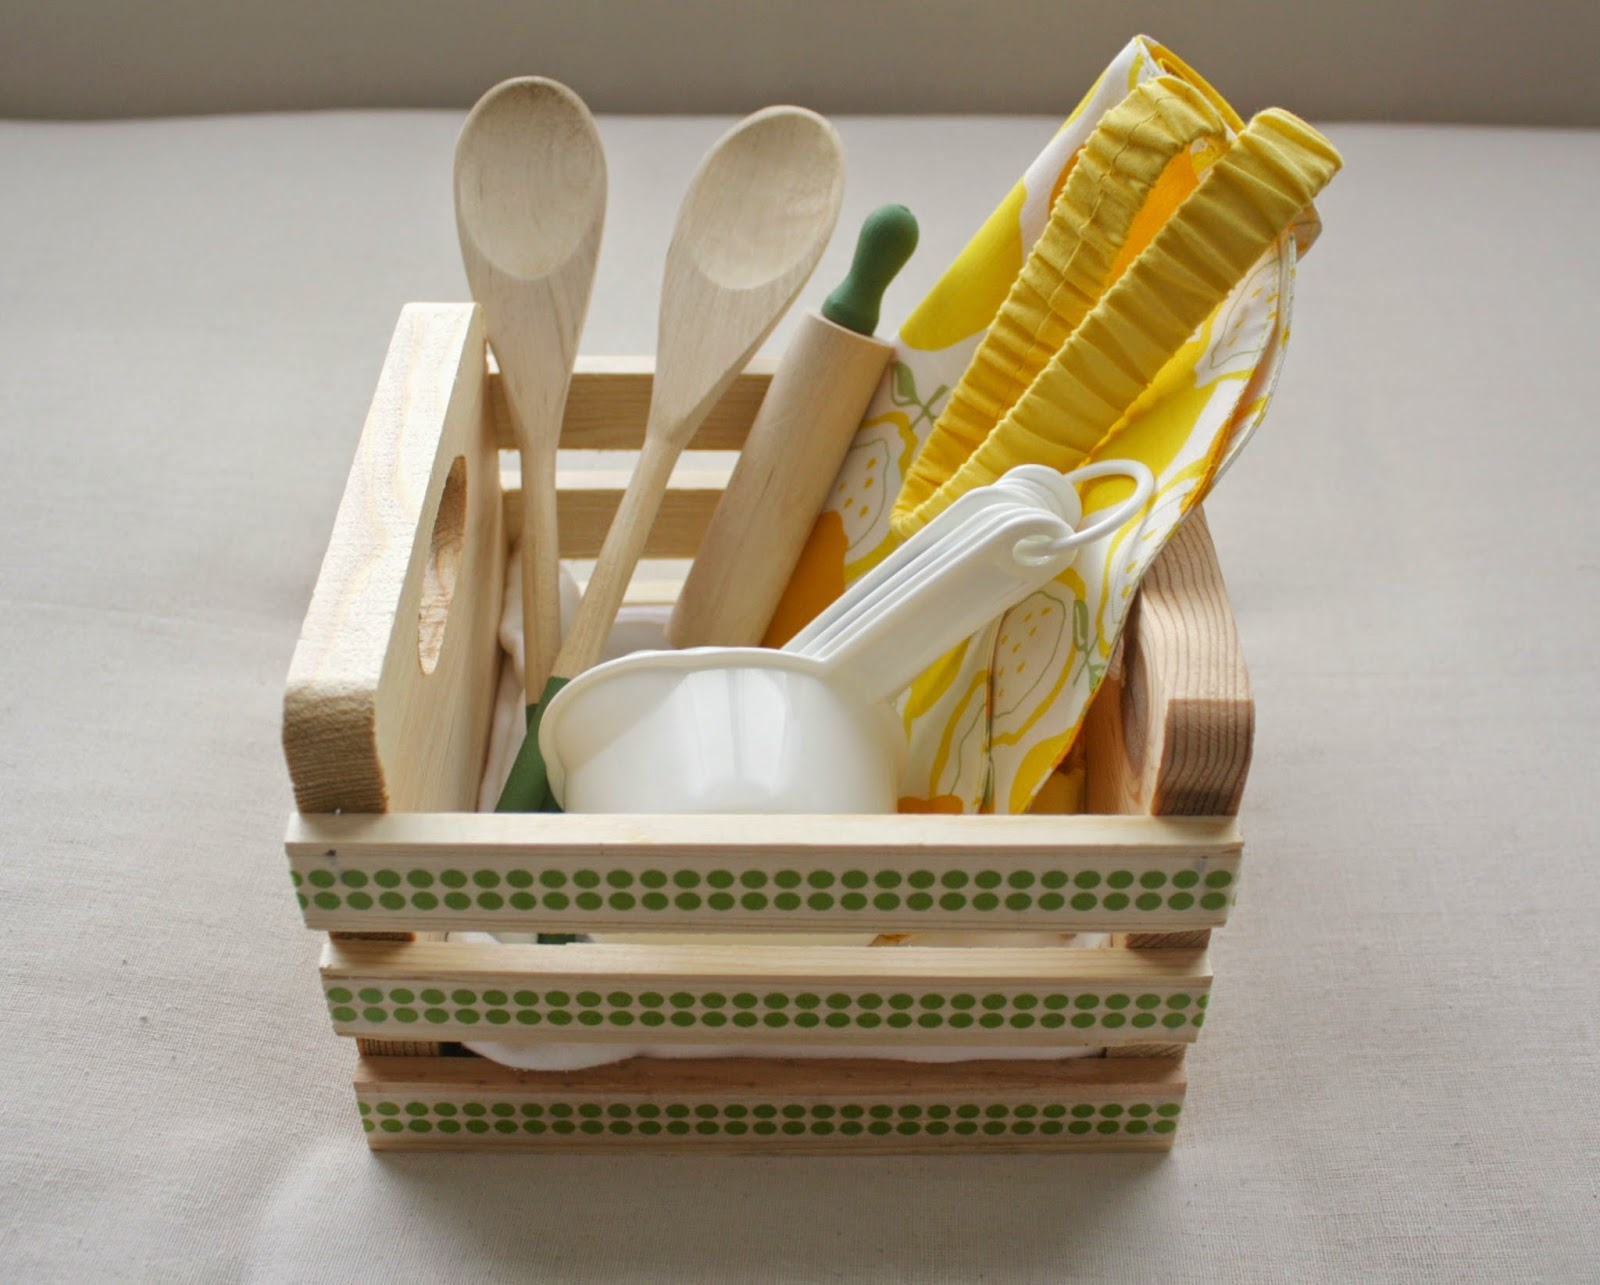 http://www.livealittlewilderblog.com/2014/08/kids-kitchen-set-tutorial.html